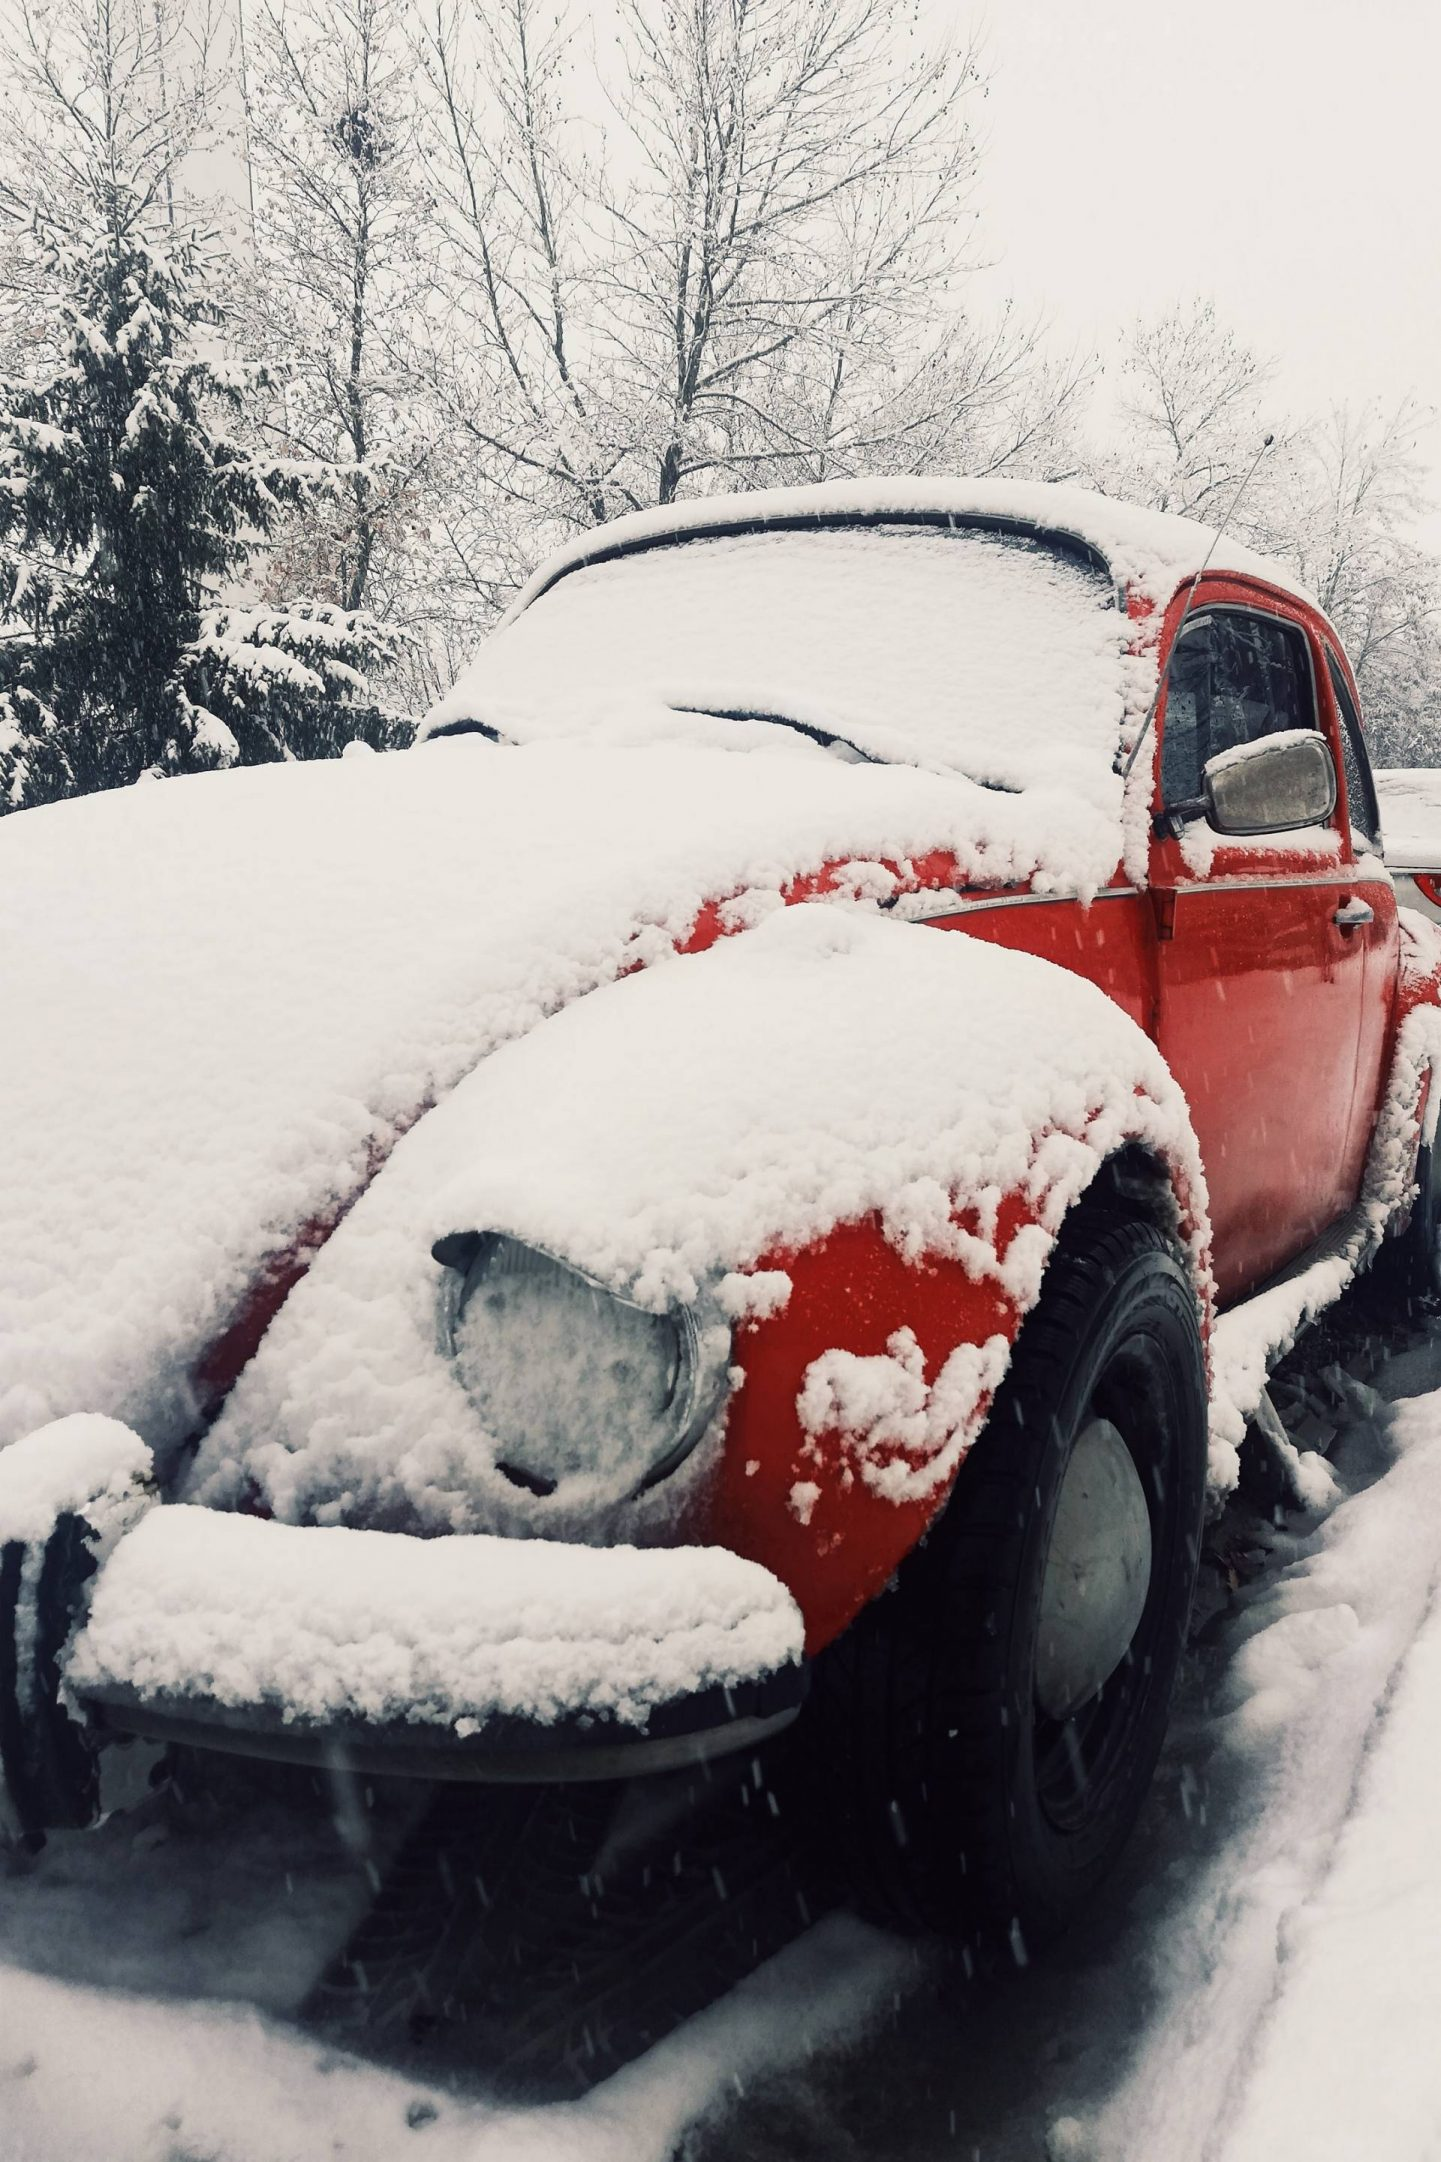 Essential Car Maintenance Tips For Winter, VW Beetle in the snow